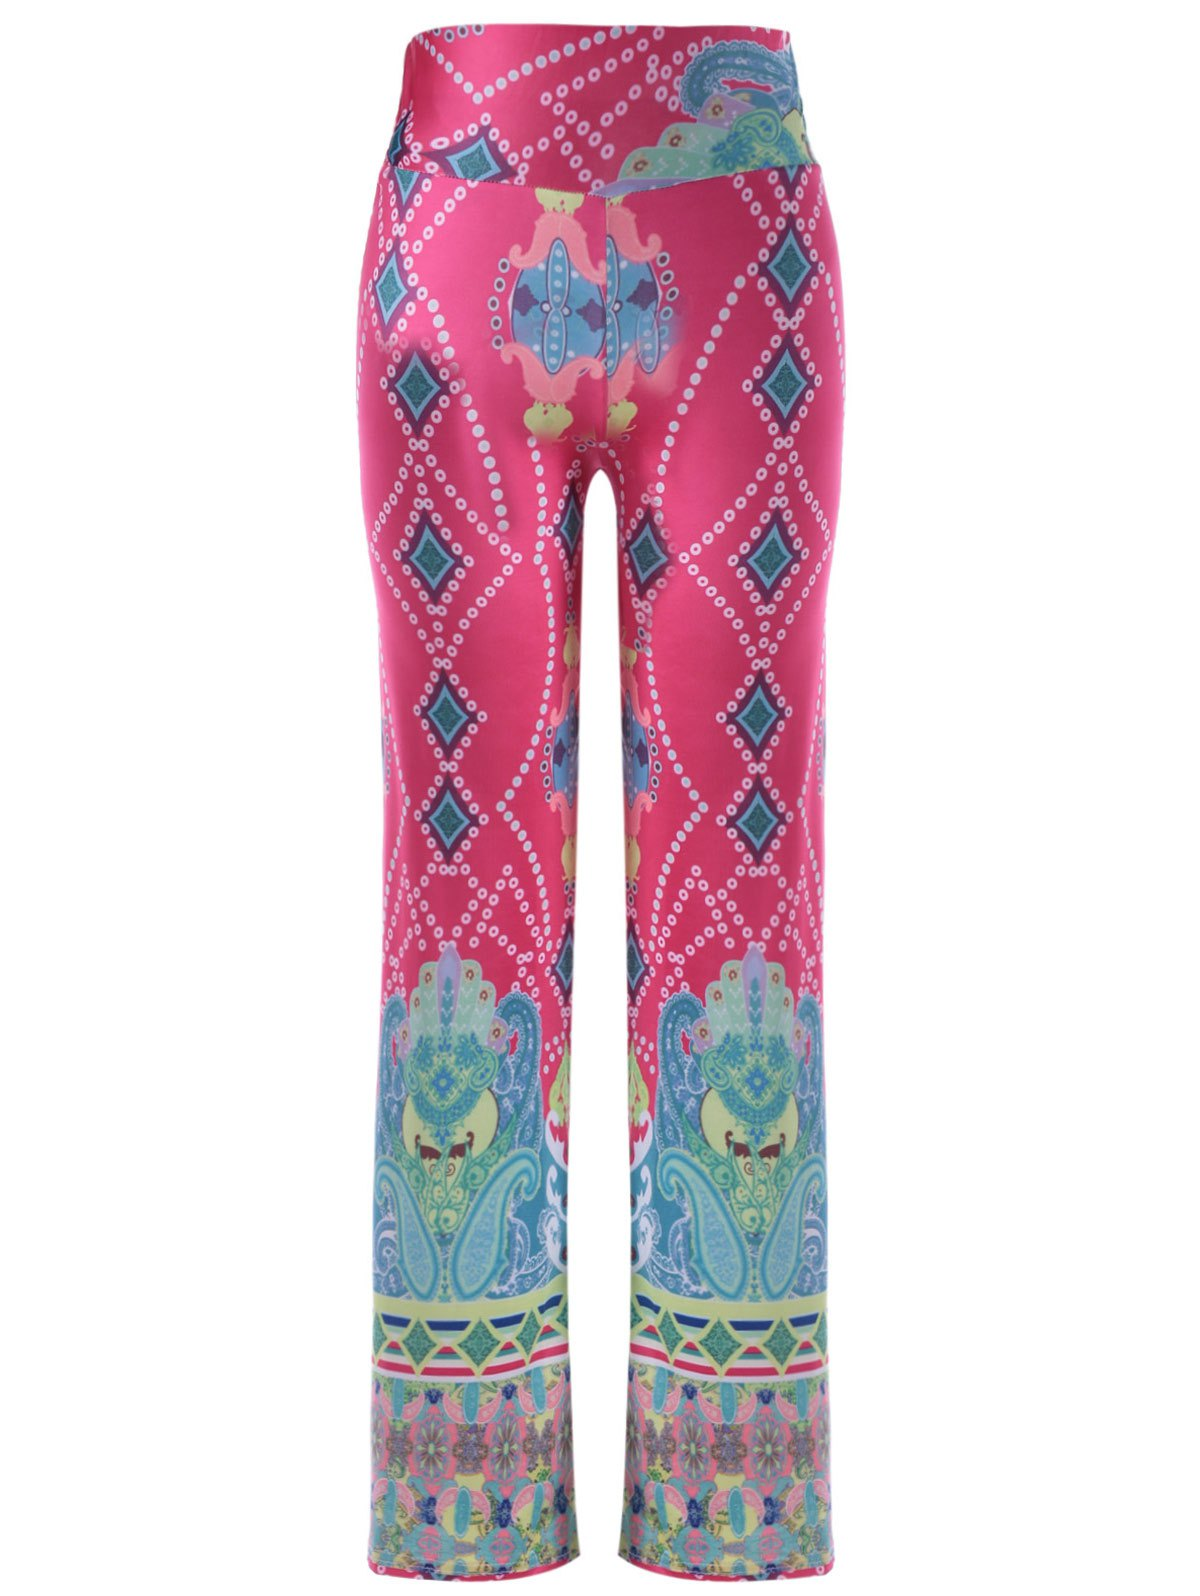 Causal Women's Elastic Waist Printing Pants - COLORMIX ONE SIZE(FIT SIZE XS TO M)